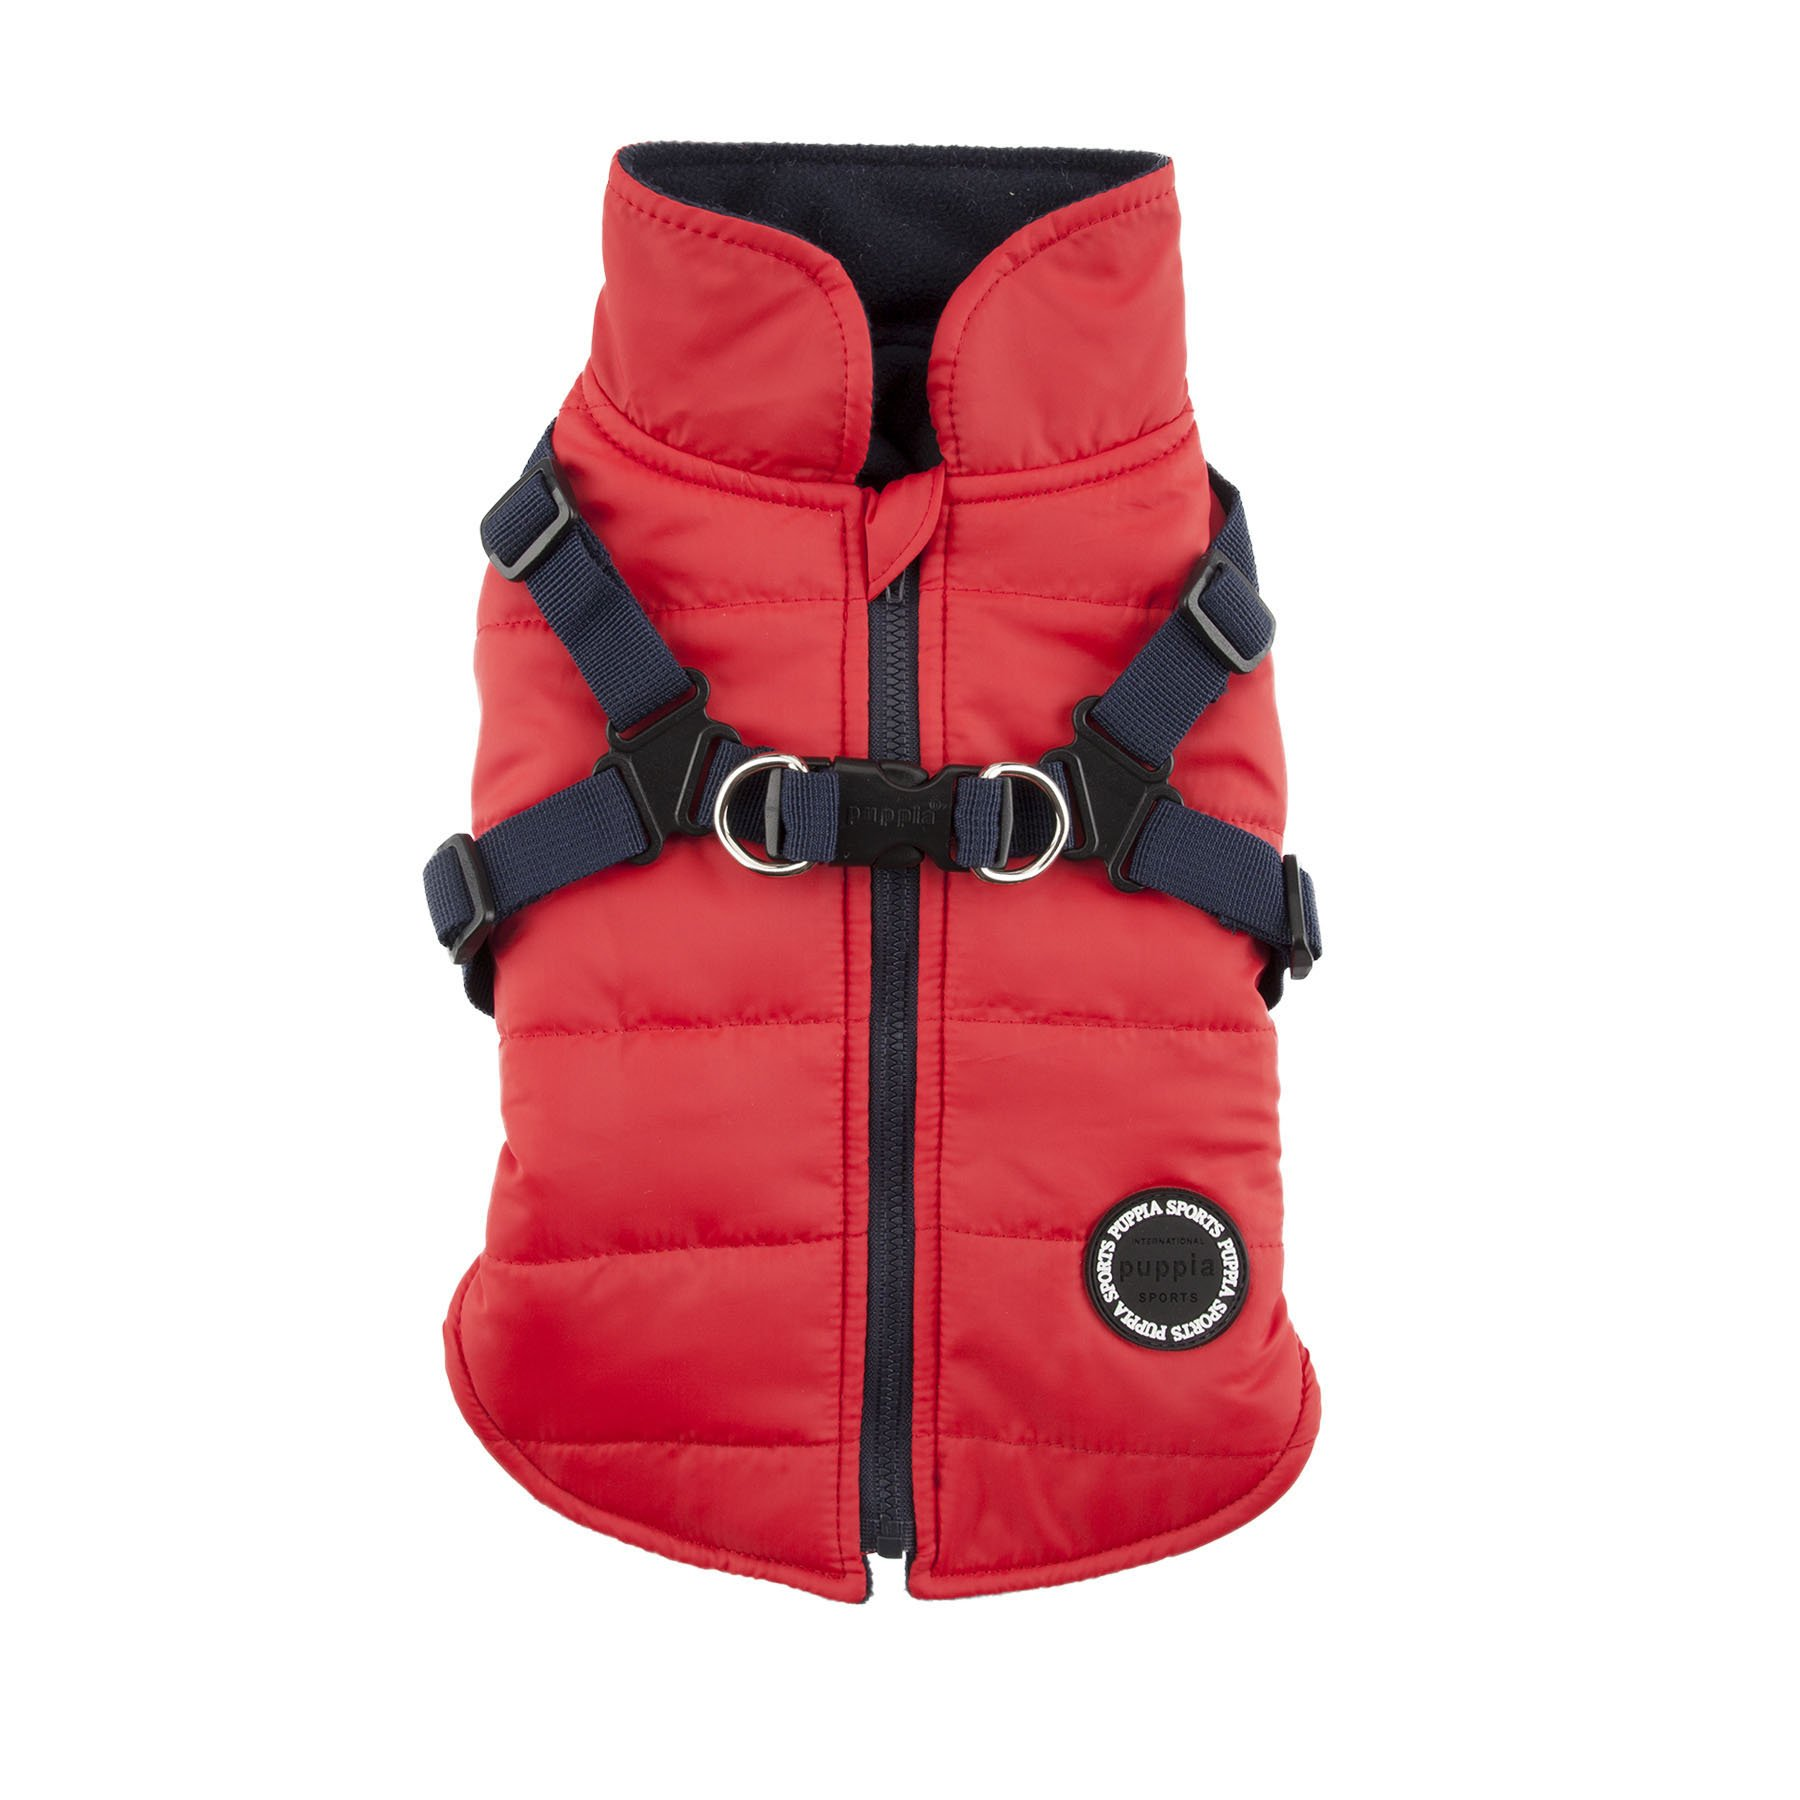 Puppia Authentic Mountaineer II Winter Vest, X-Large, Red